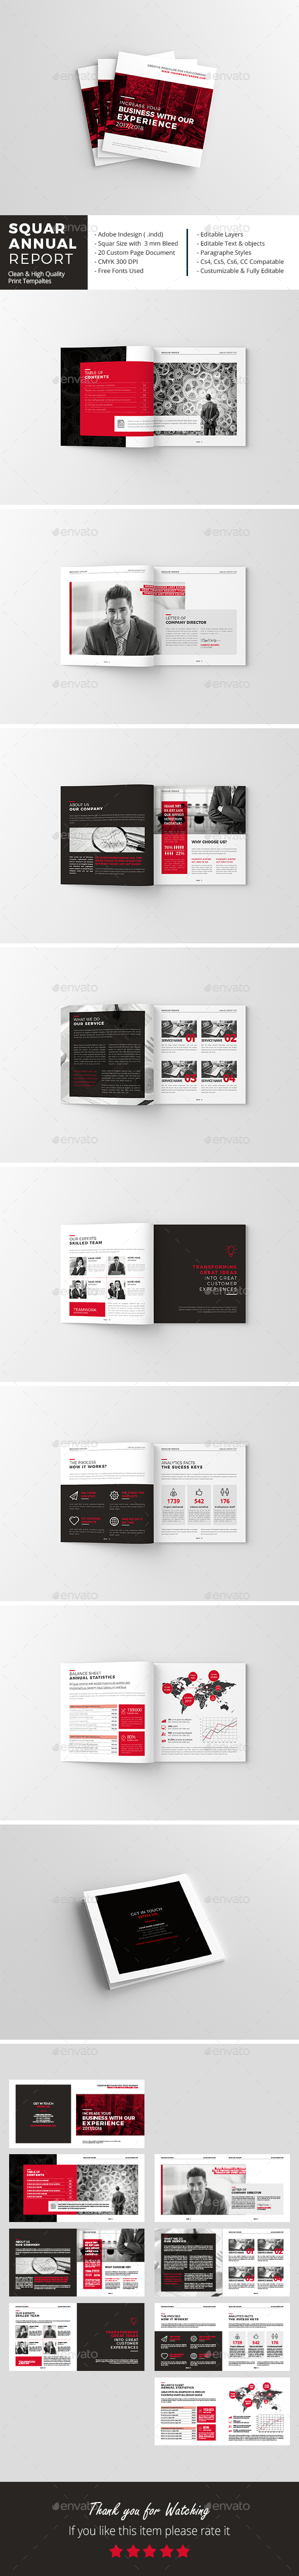 Squar Annual Report 16 Pages - Corporate Brochures